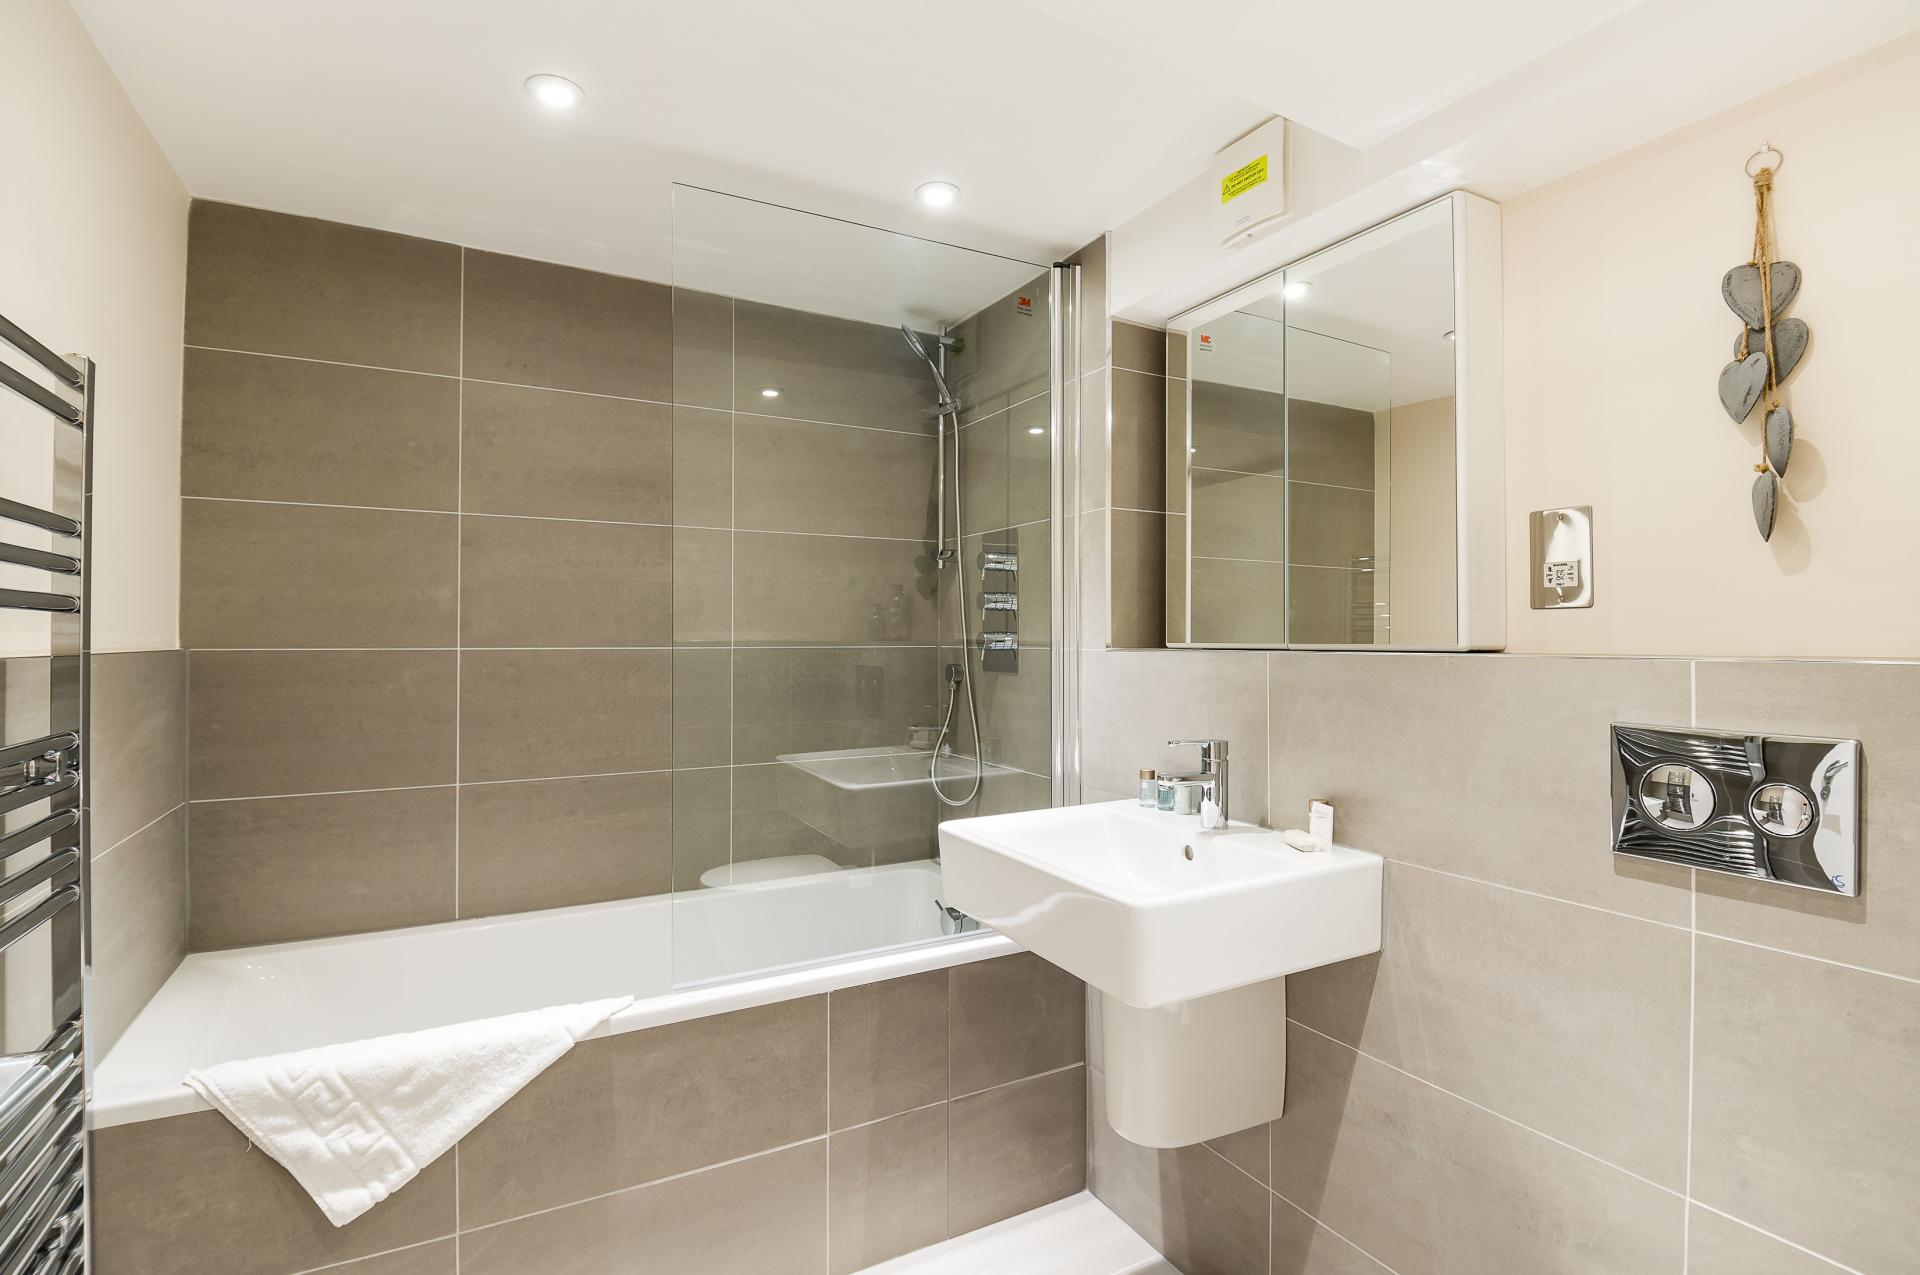 Bathroom at Flying Butler Vincent Square Apartments, Victoria, London